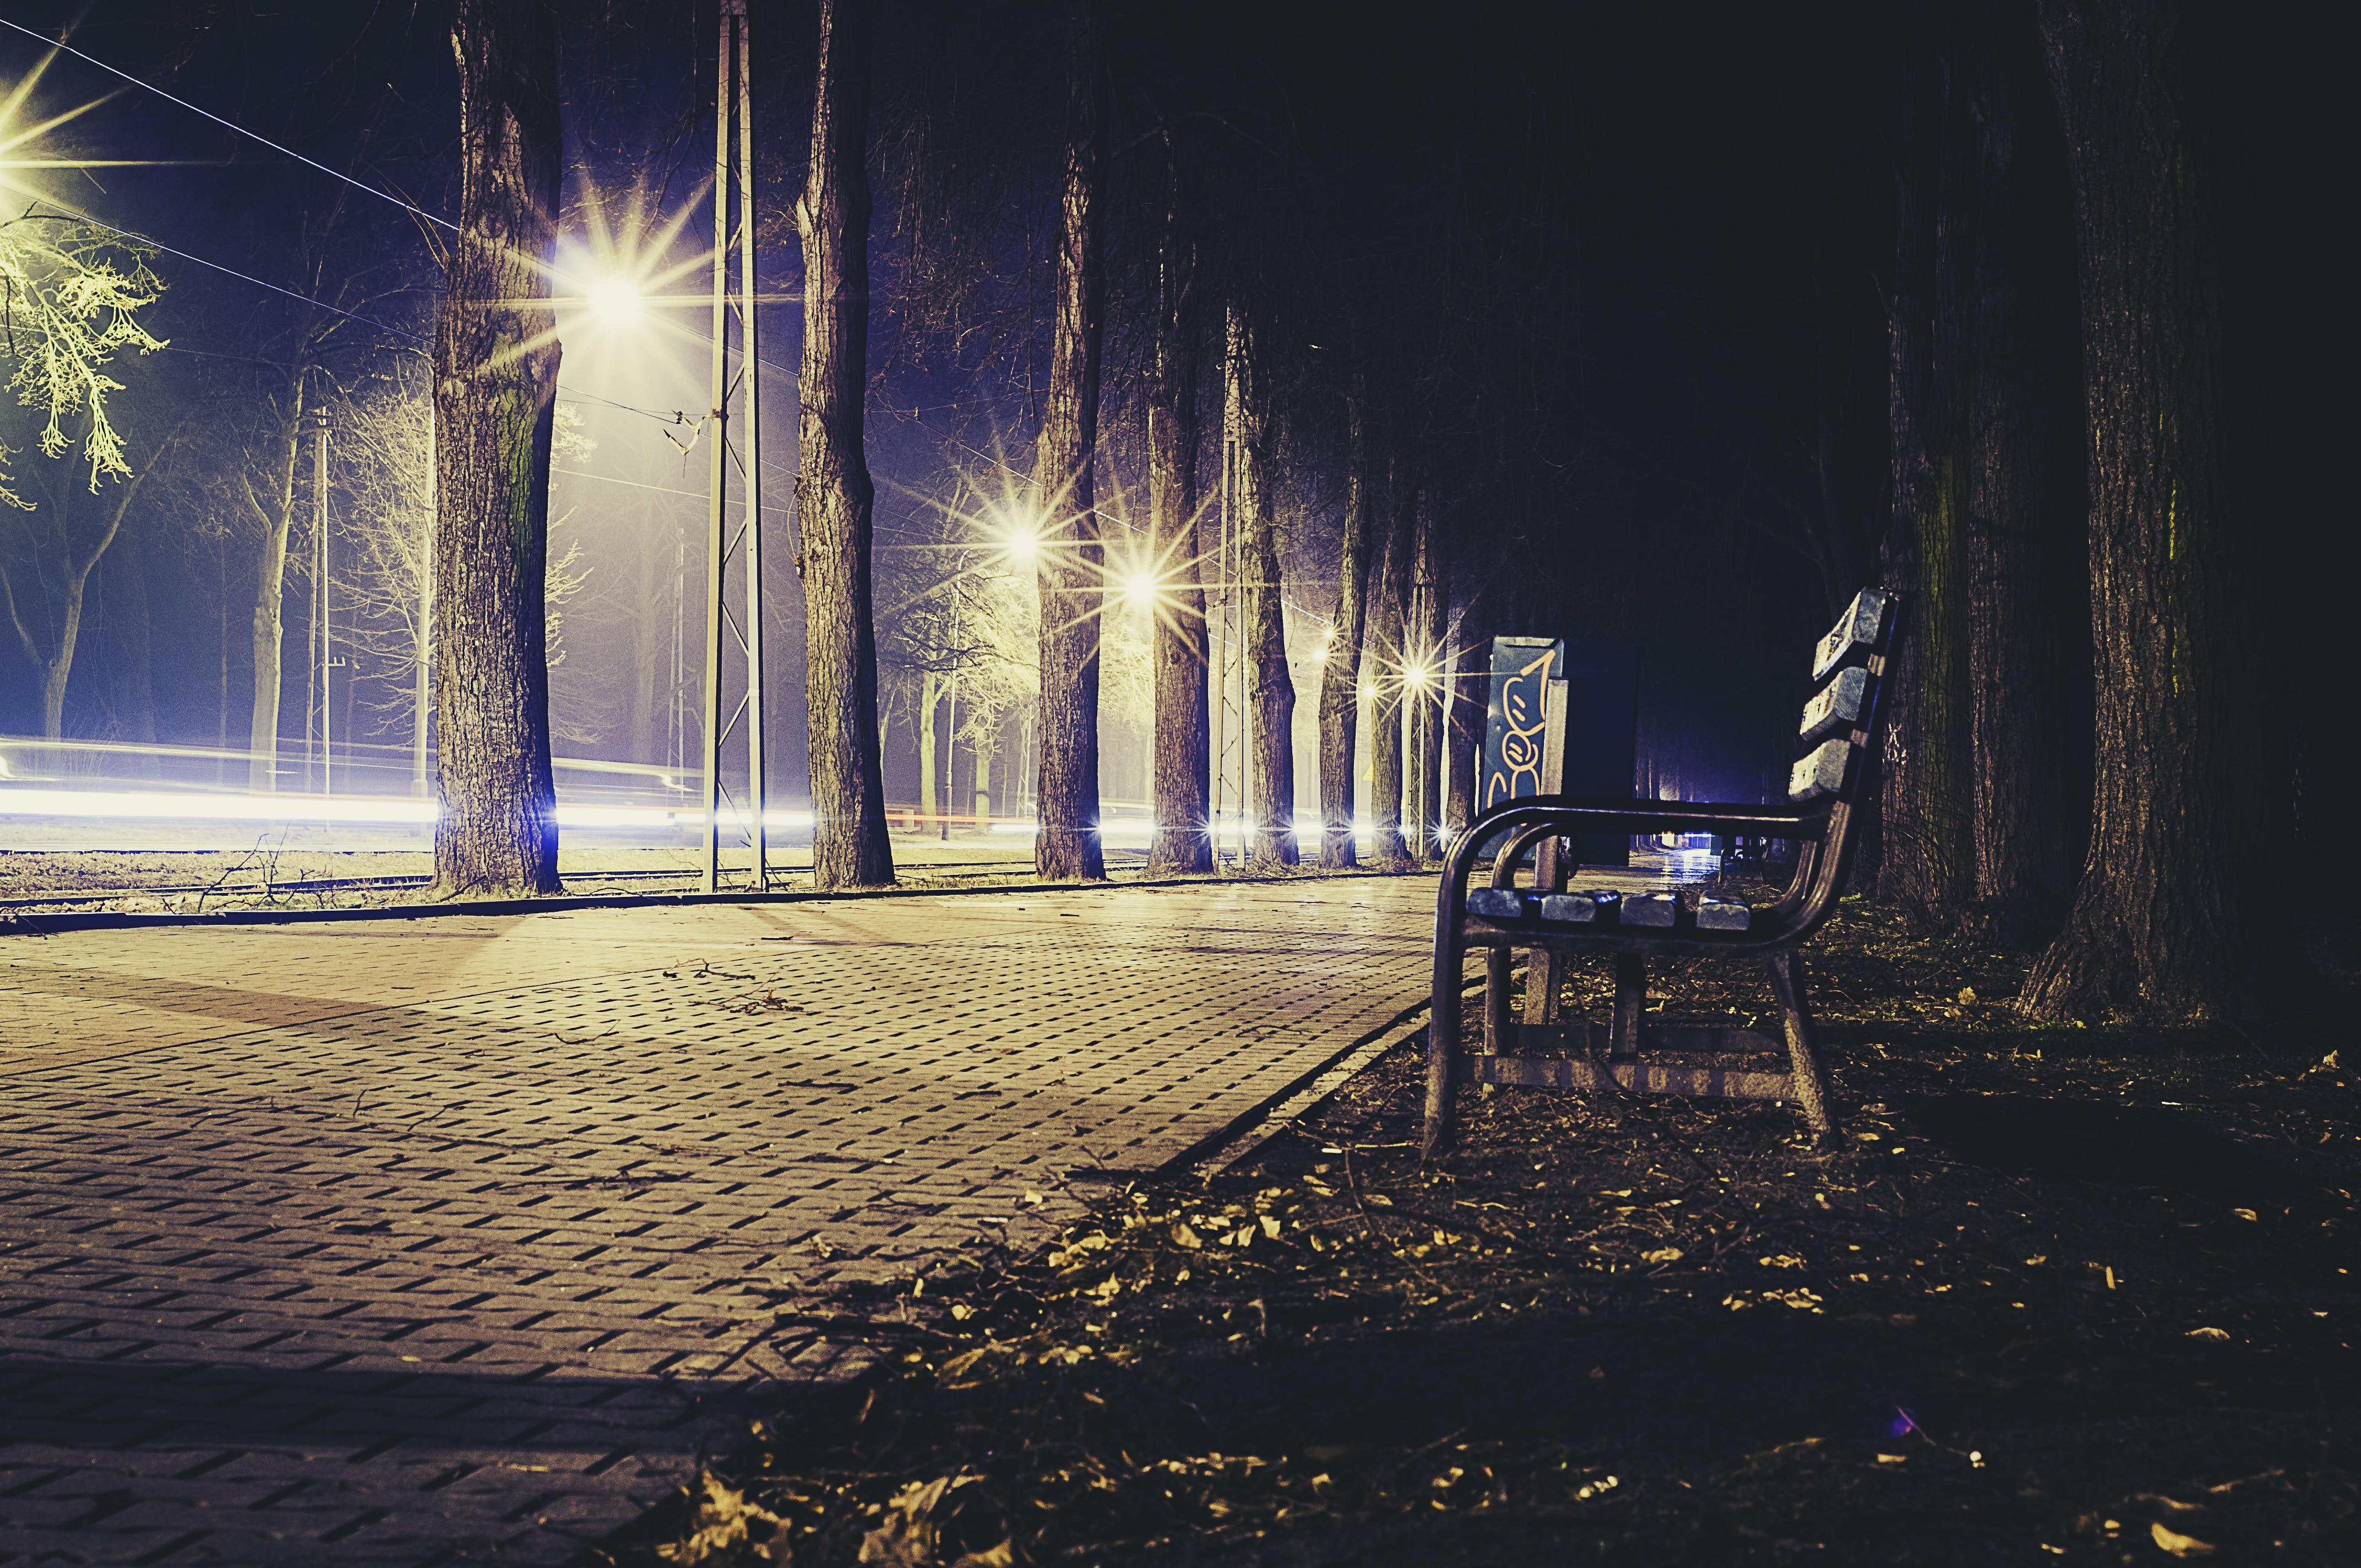 Photography of Brown Bench Beside Walkway and Trees at Night